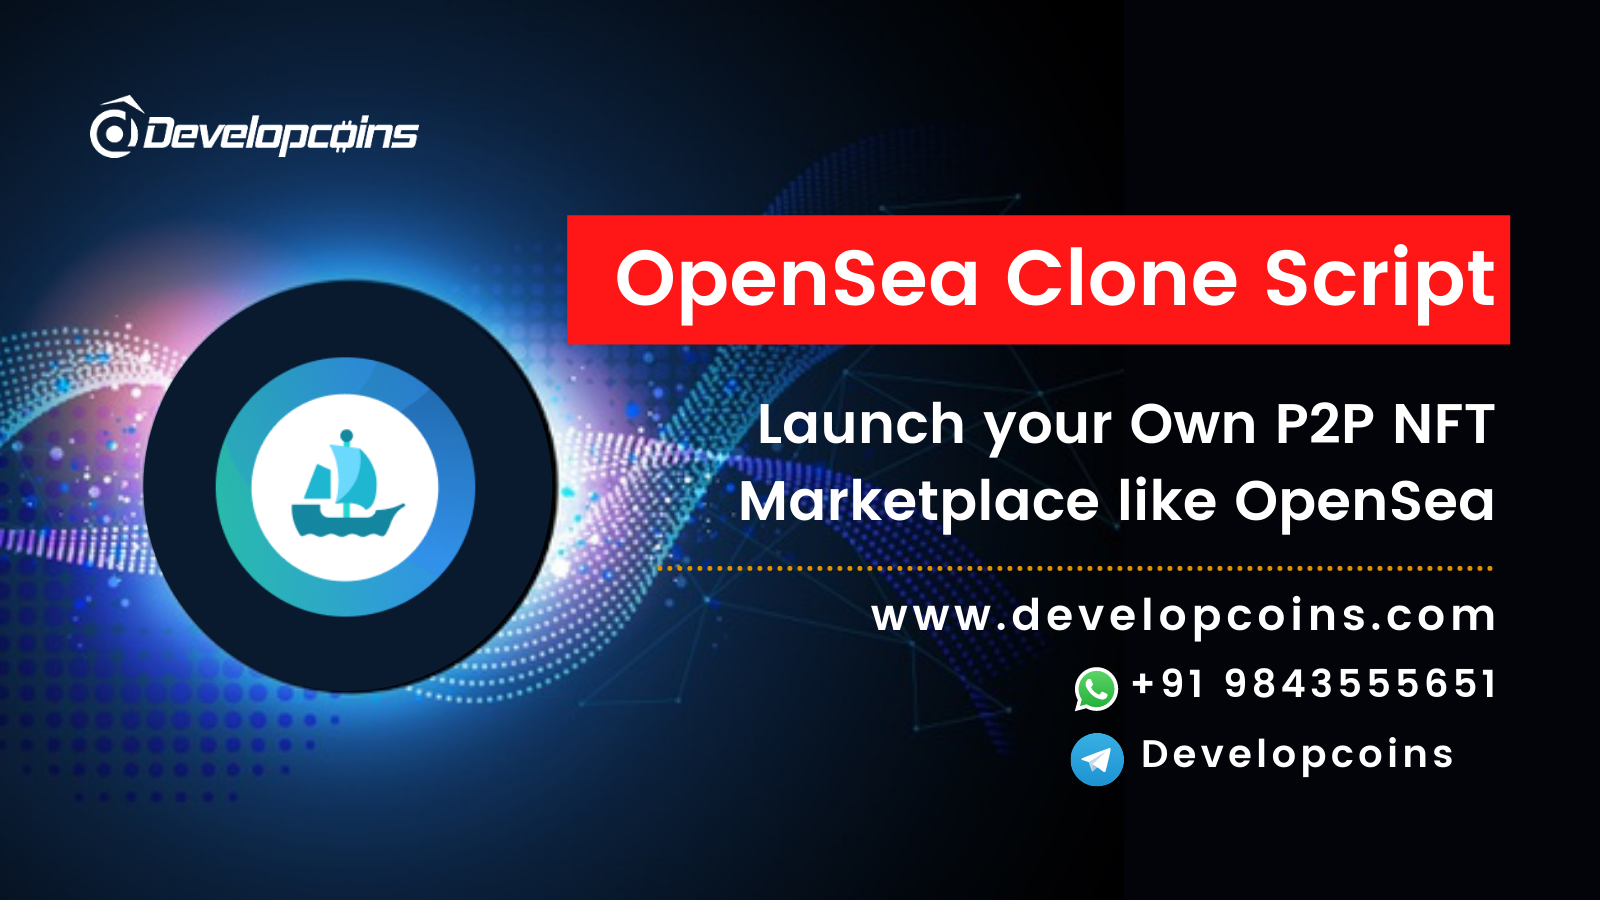 Launch Your Own P2P NFT Markeplace Platform like OpenSea